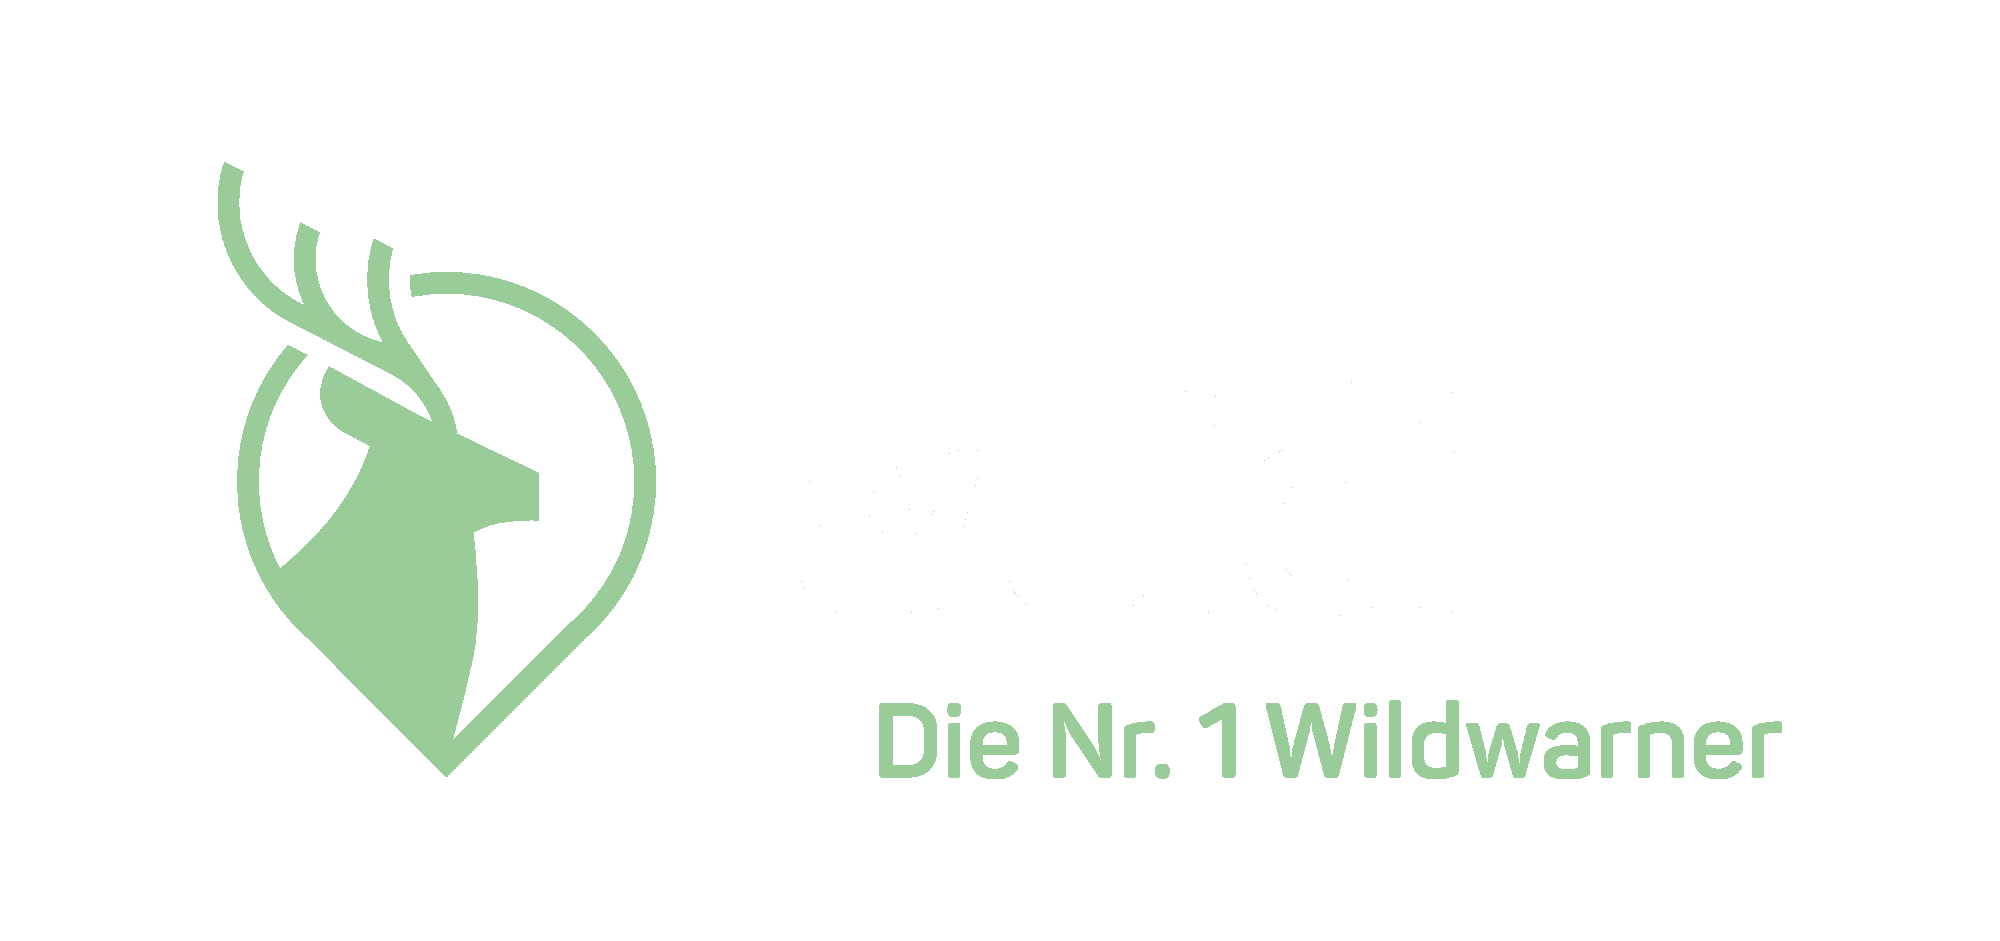 wuidi_logo_transparent_weiss_claim.png